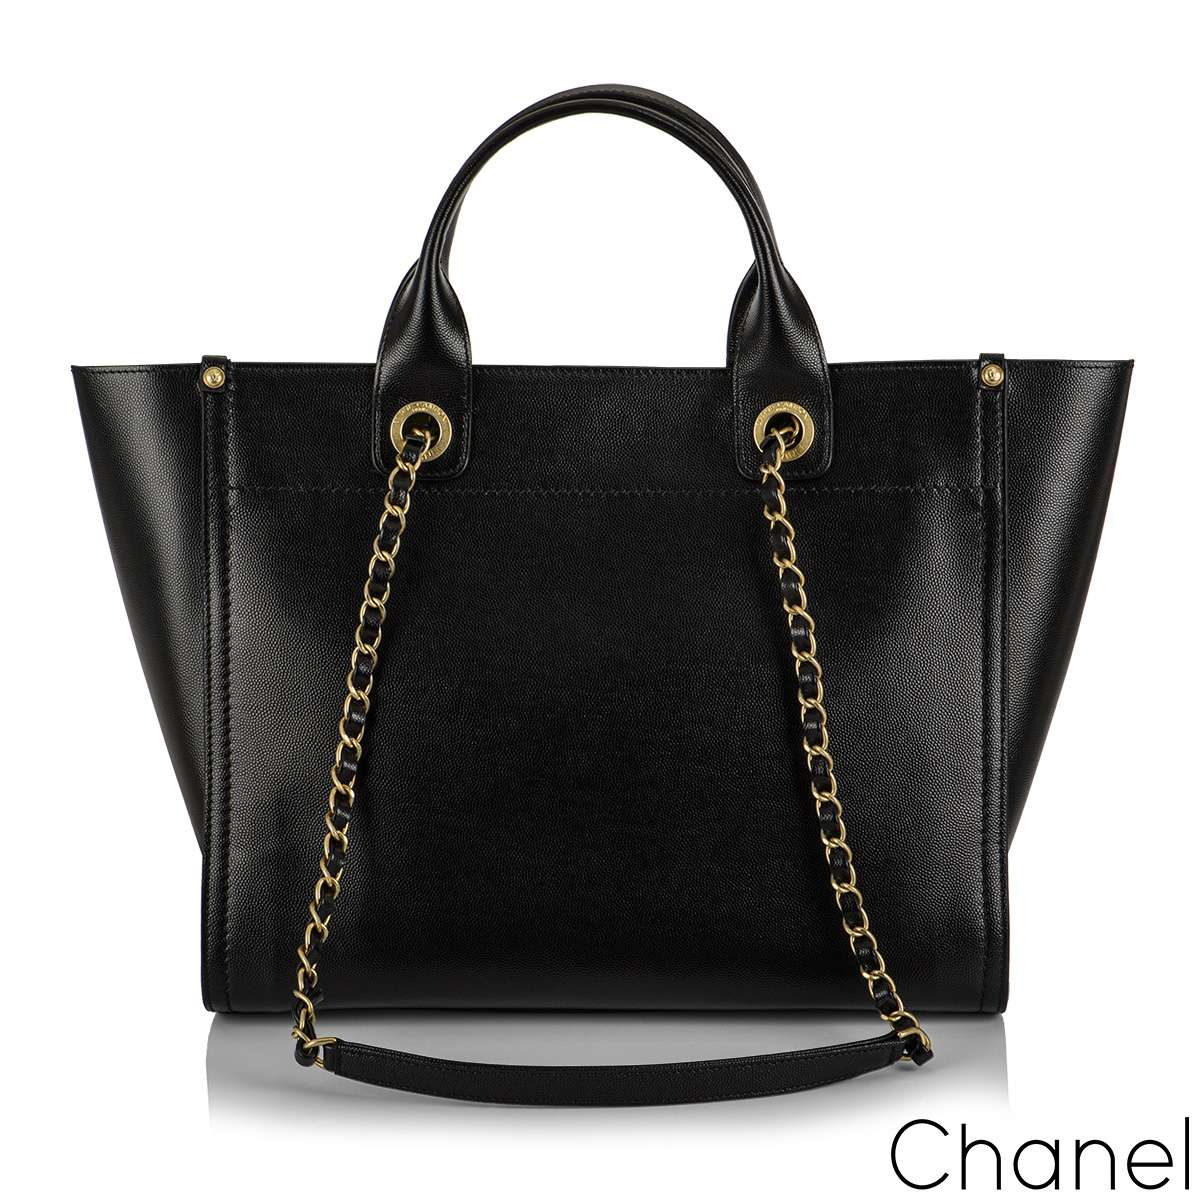 Chanel Black Caviar Leather Medium Deauville Tote Ruthenium Hardware